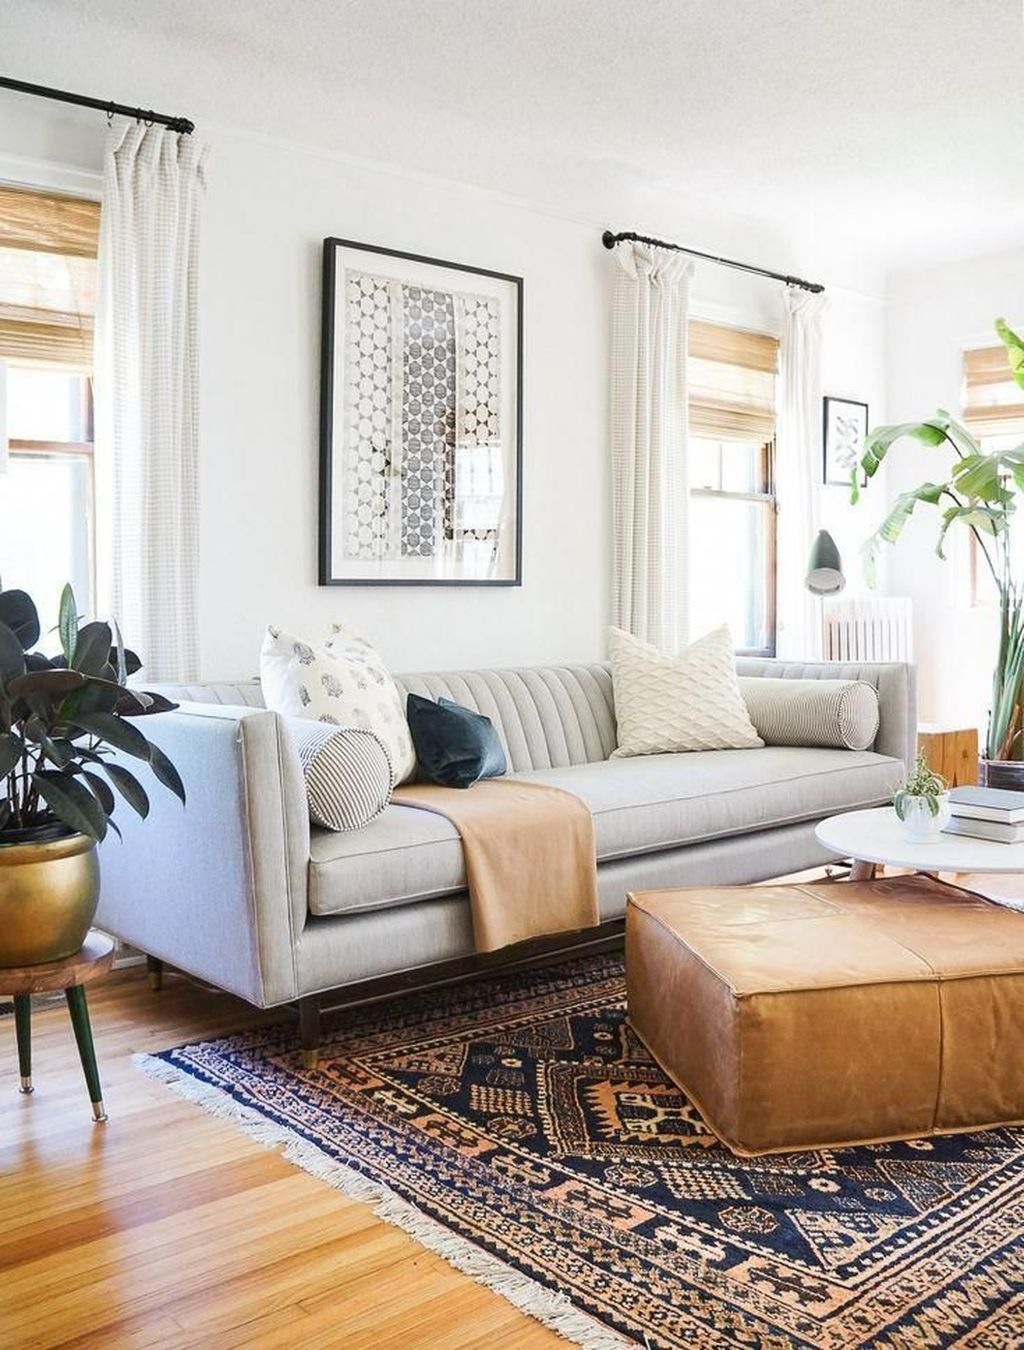 44 Stylish Modern Furniture Design Ideas For Your Modern Living Room images